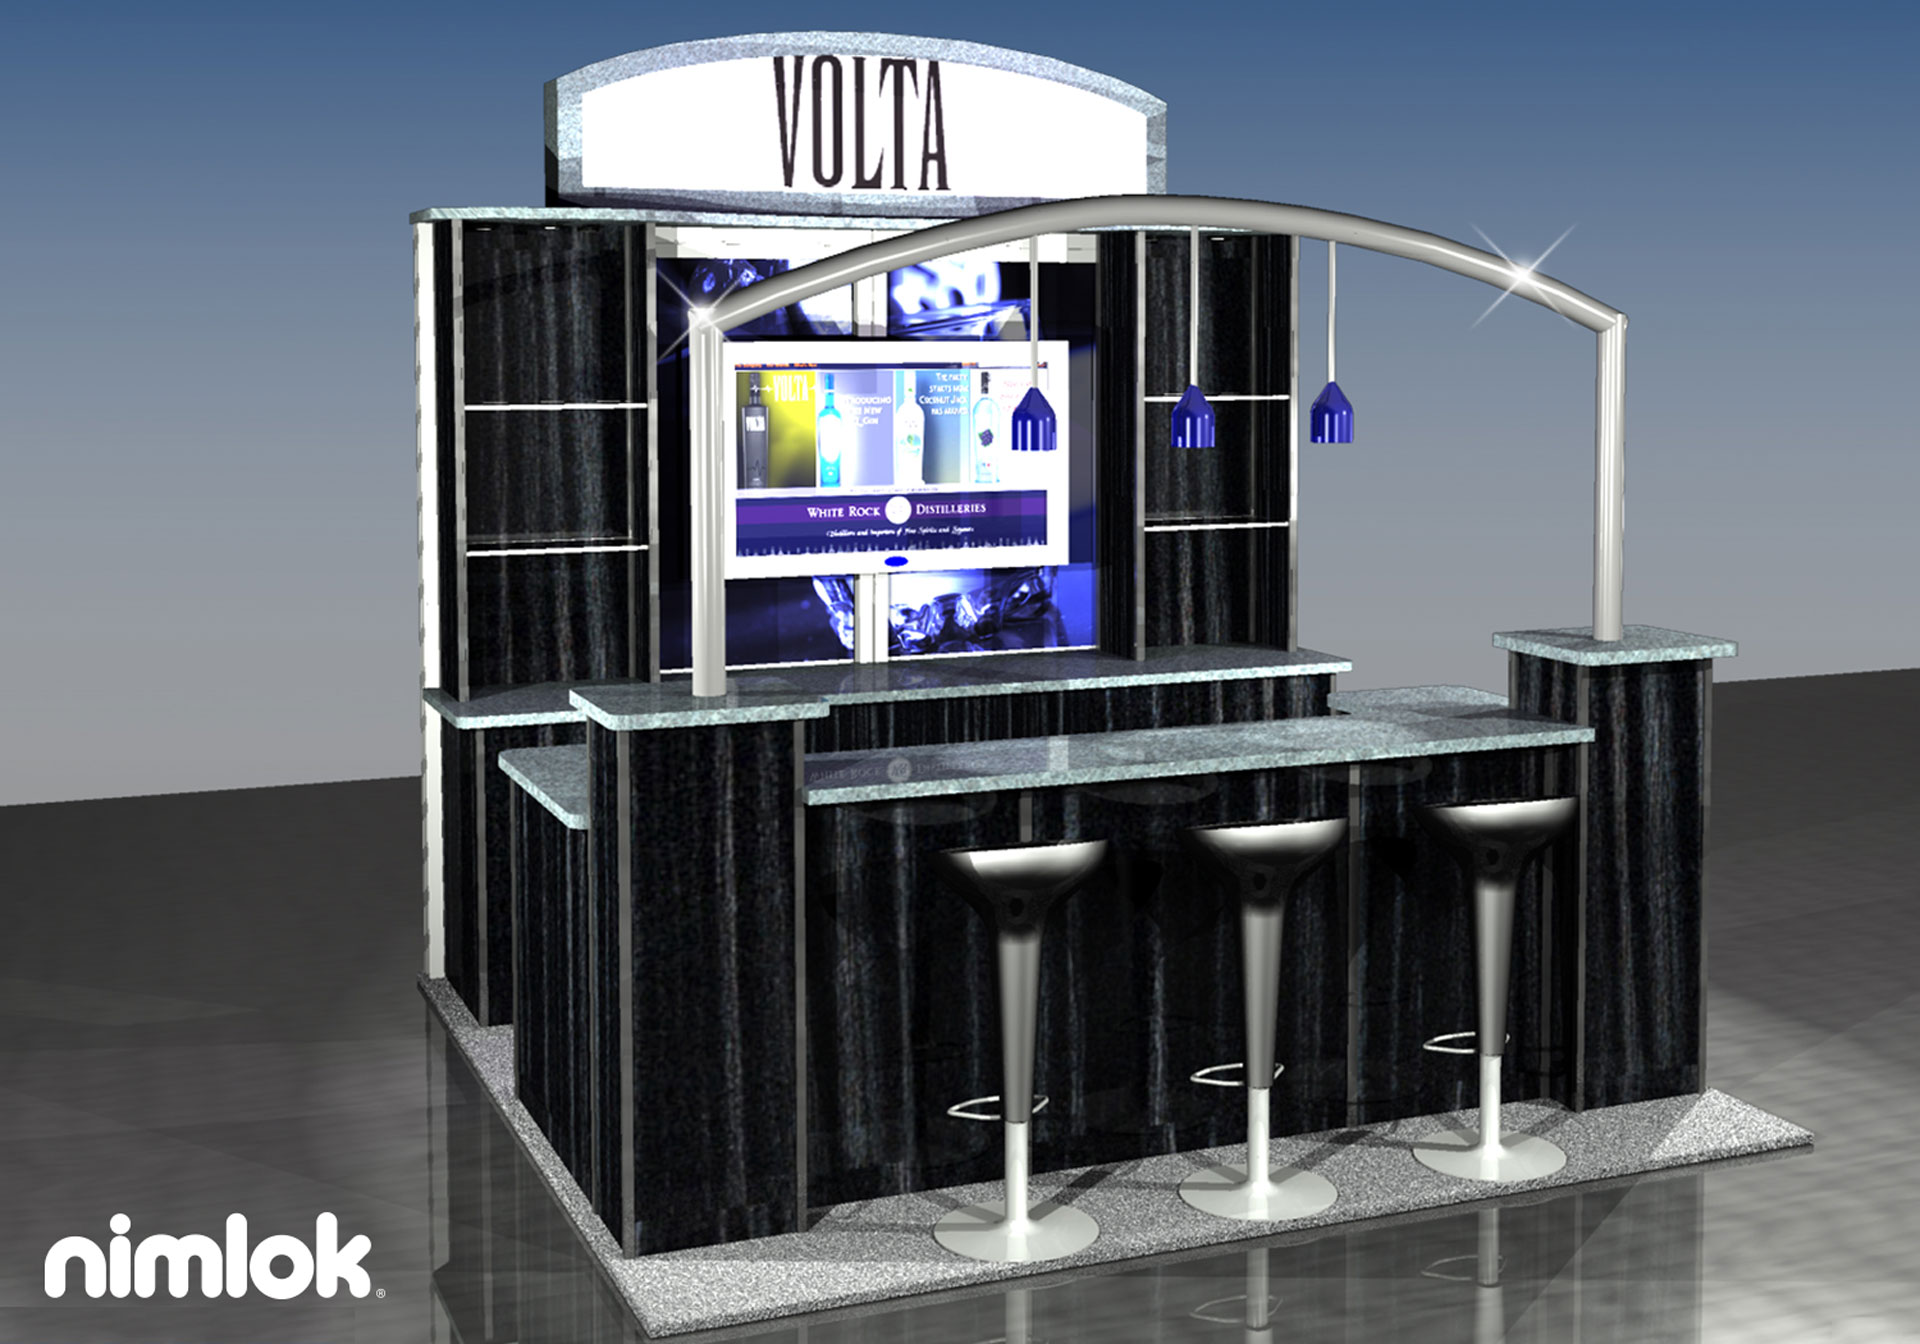 White Rock Distilleries/ Volta  - 10x10 - trade show exhibit